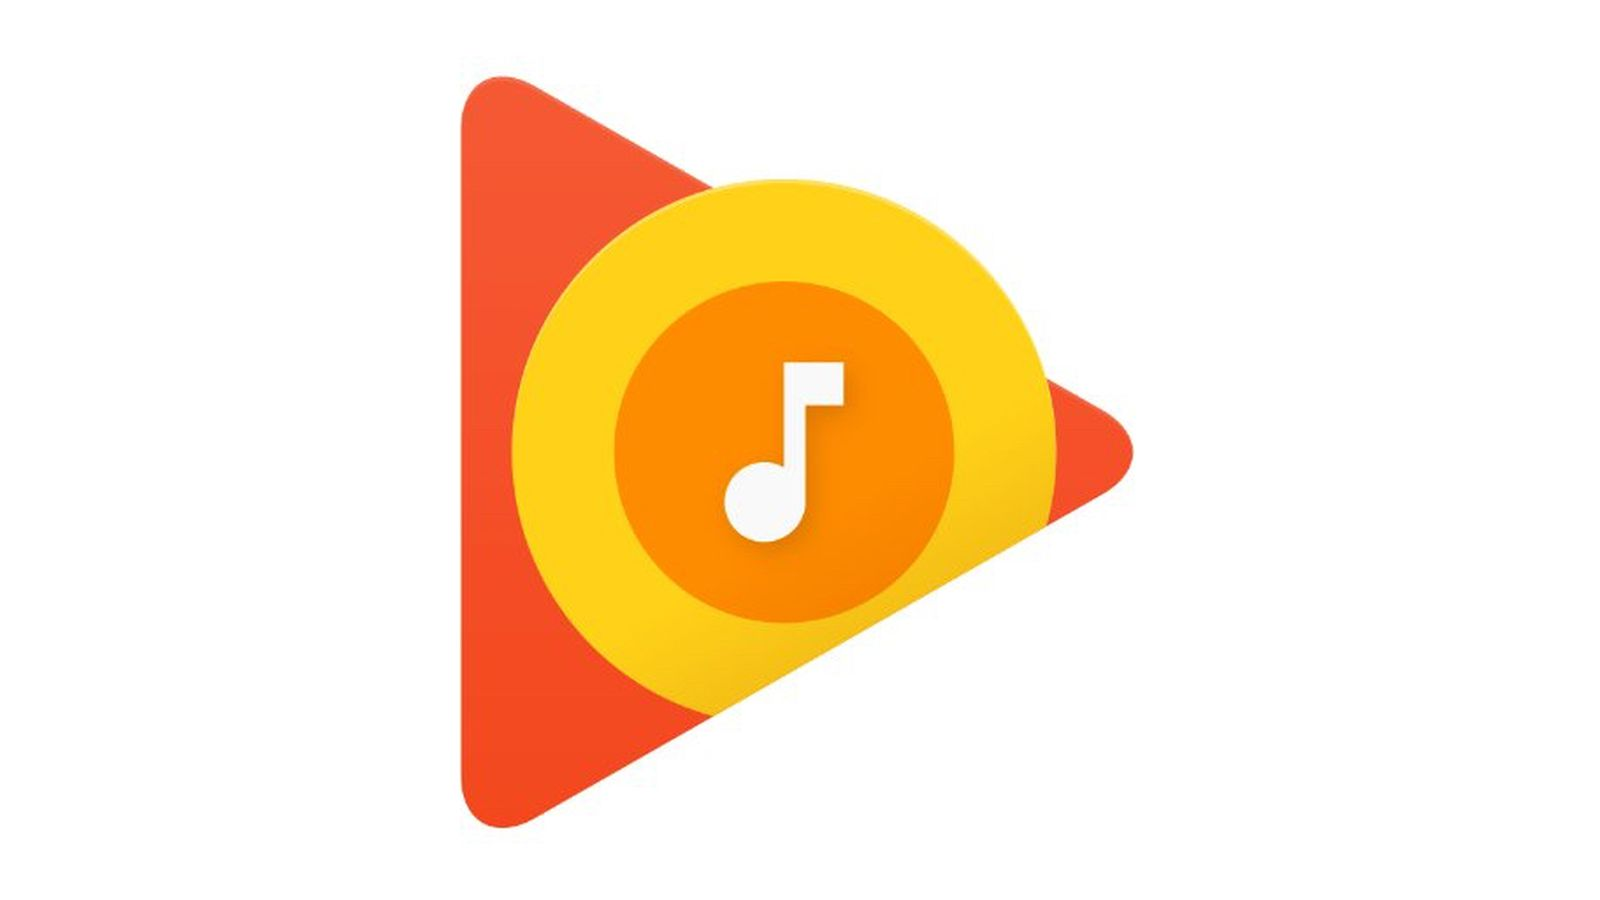 Google play music replaced its old headphones logo with for Goodl